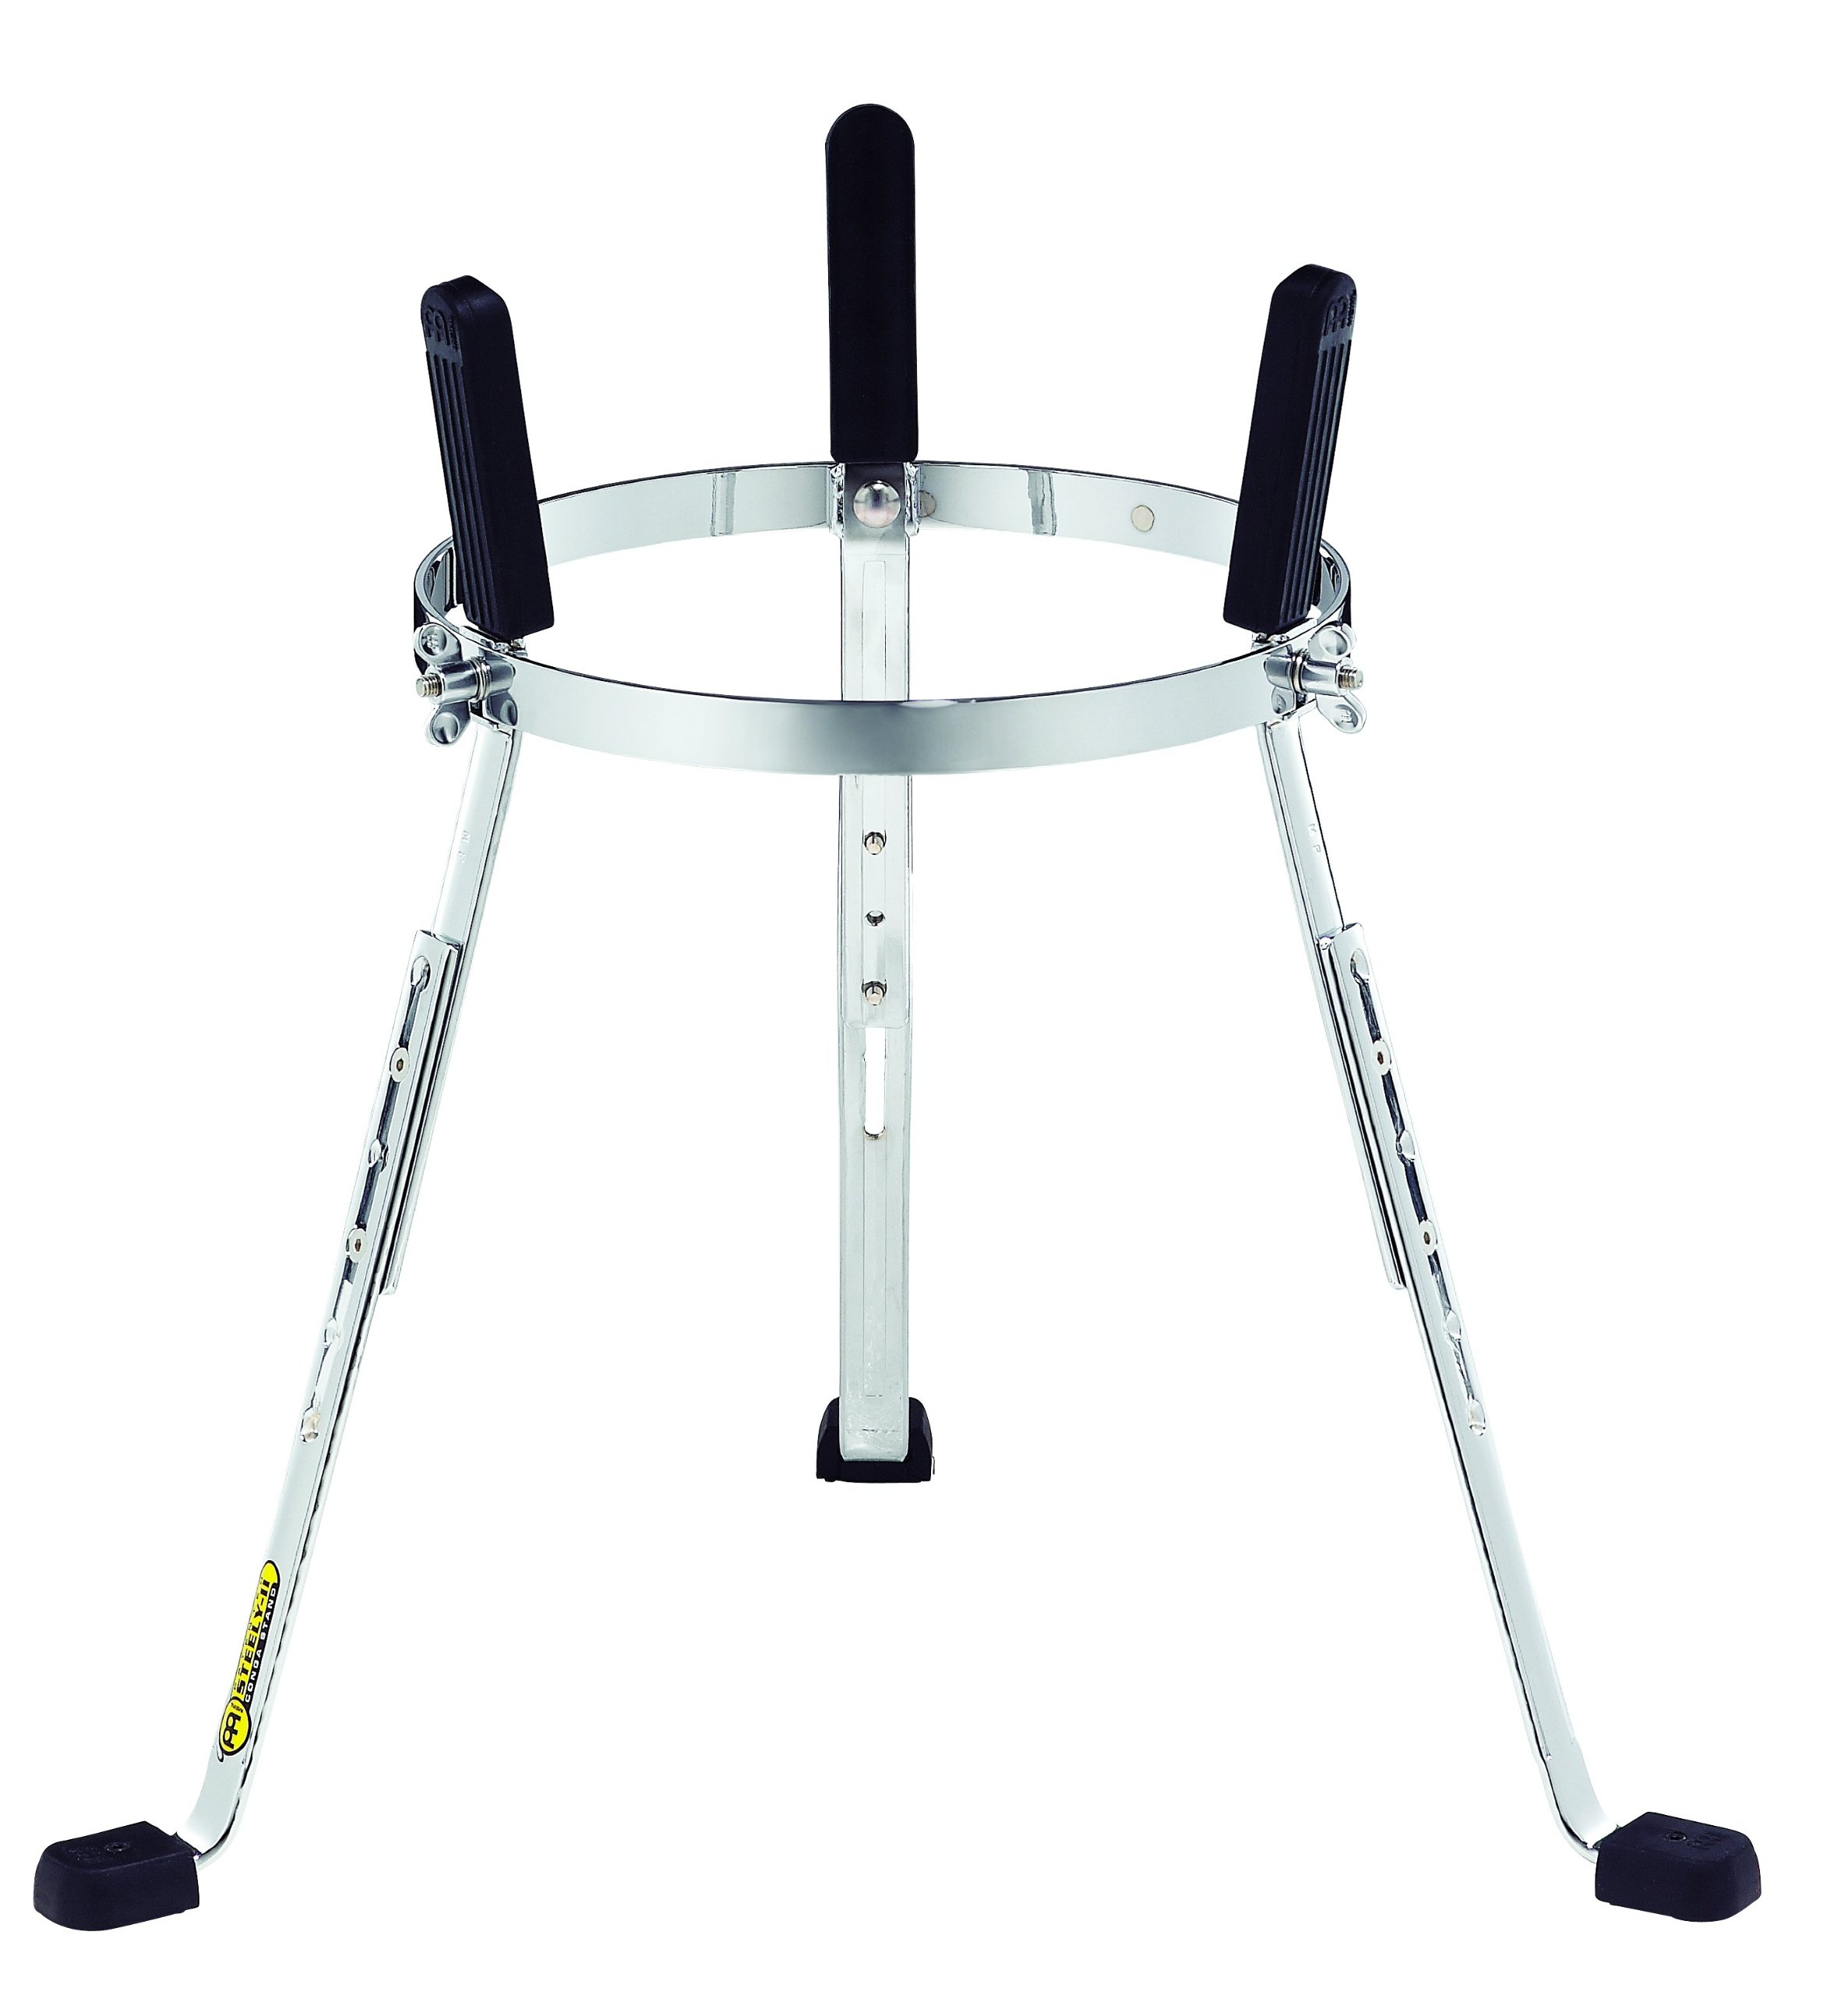 Meinl Percussion ST-MP1134CH Steely II Height Adjustable Stand for 11 3/4-Inch MEINL Professional Congas, Chrome